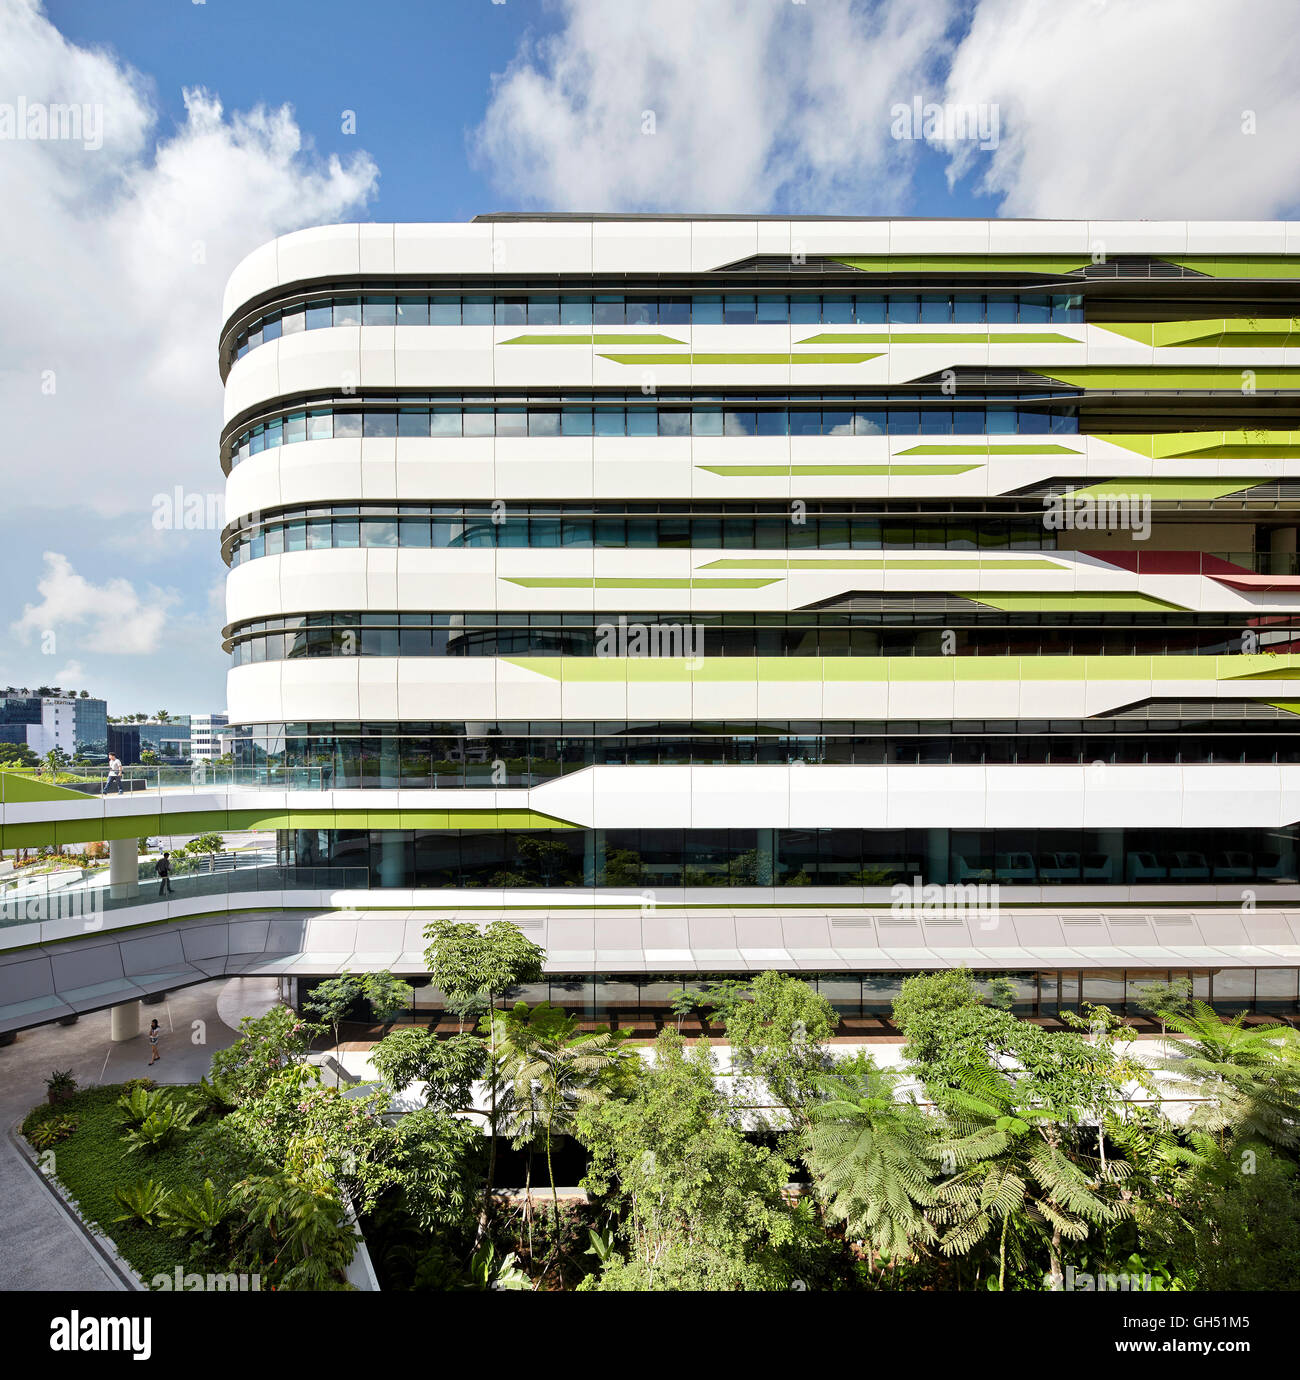 Front Elevation Of Multistoried Building : Front elevation of multi storey facade with landscaped